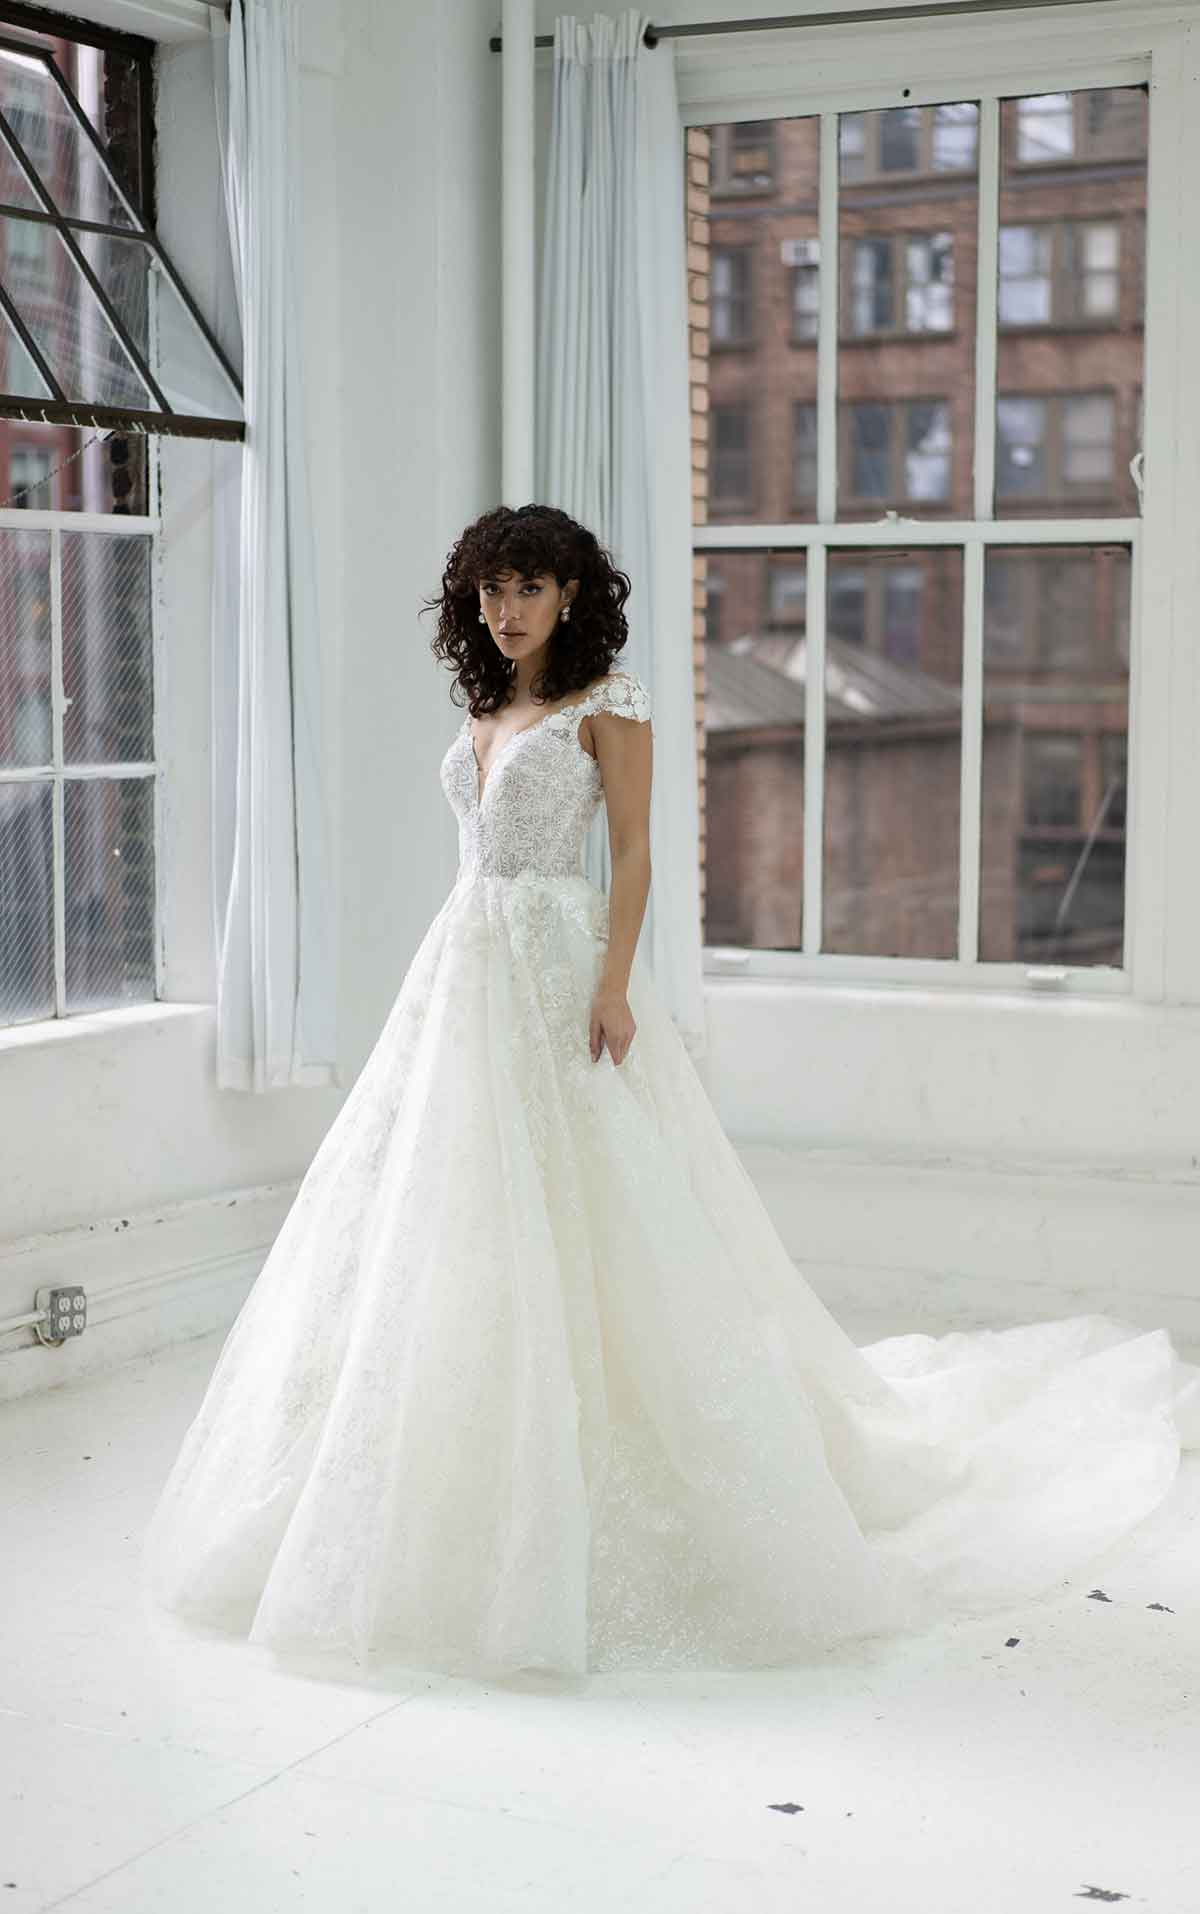 1371 Dramatic Sparkling Ballgown with Lace Details and Keyhole Back by Martina Liana